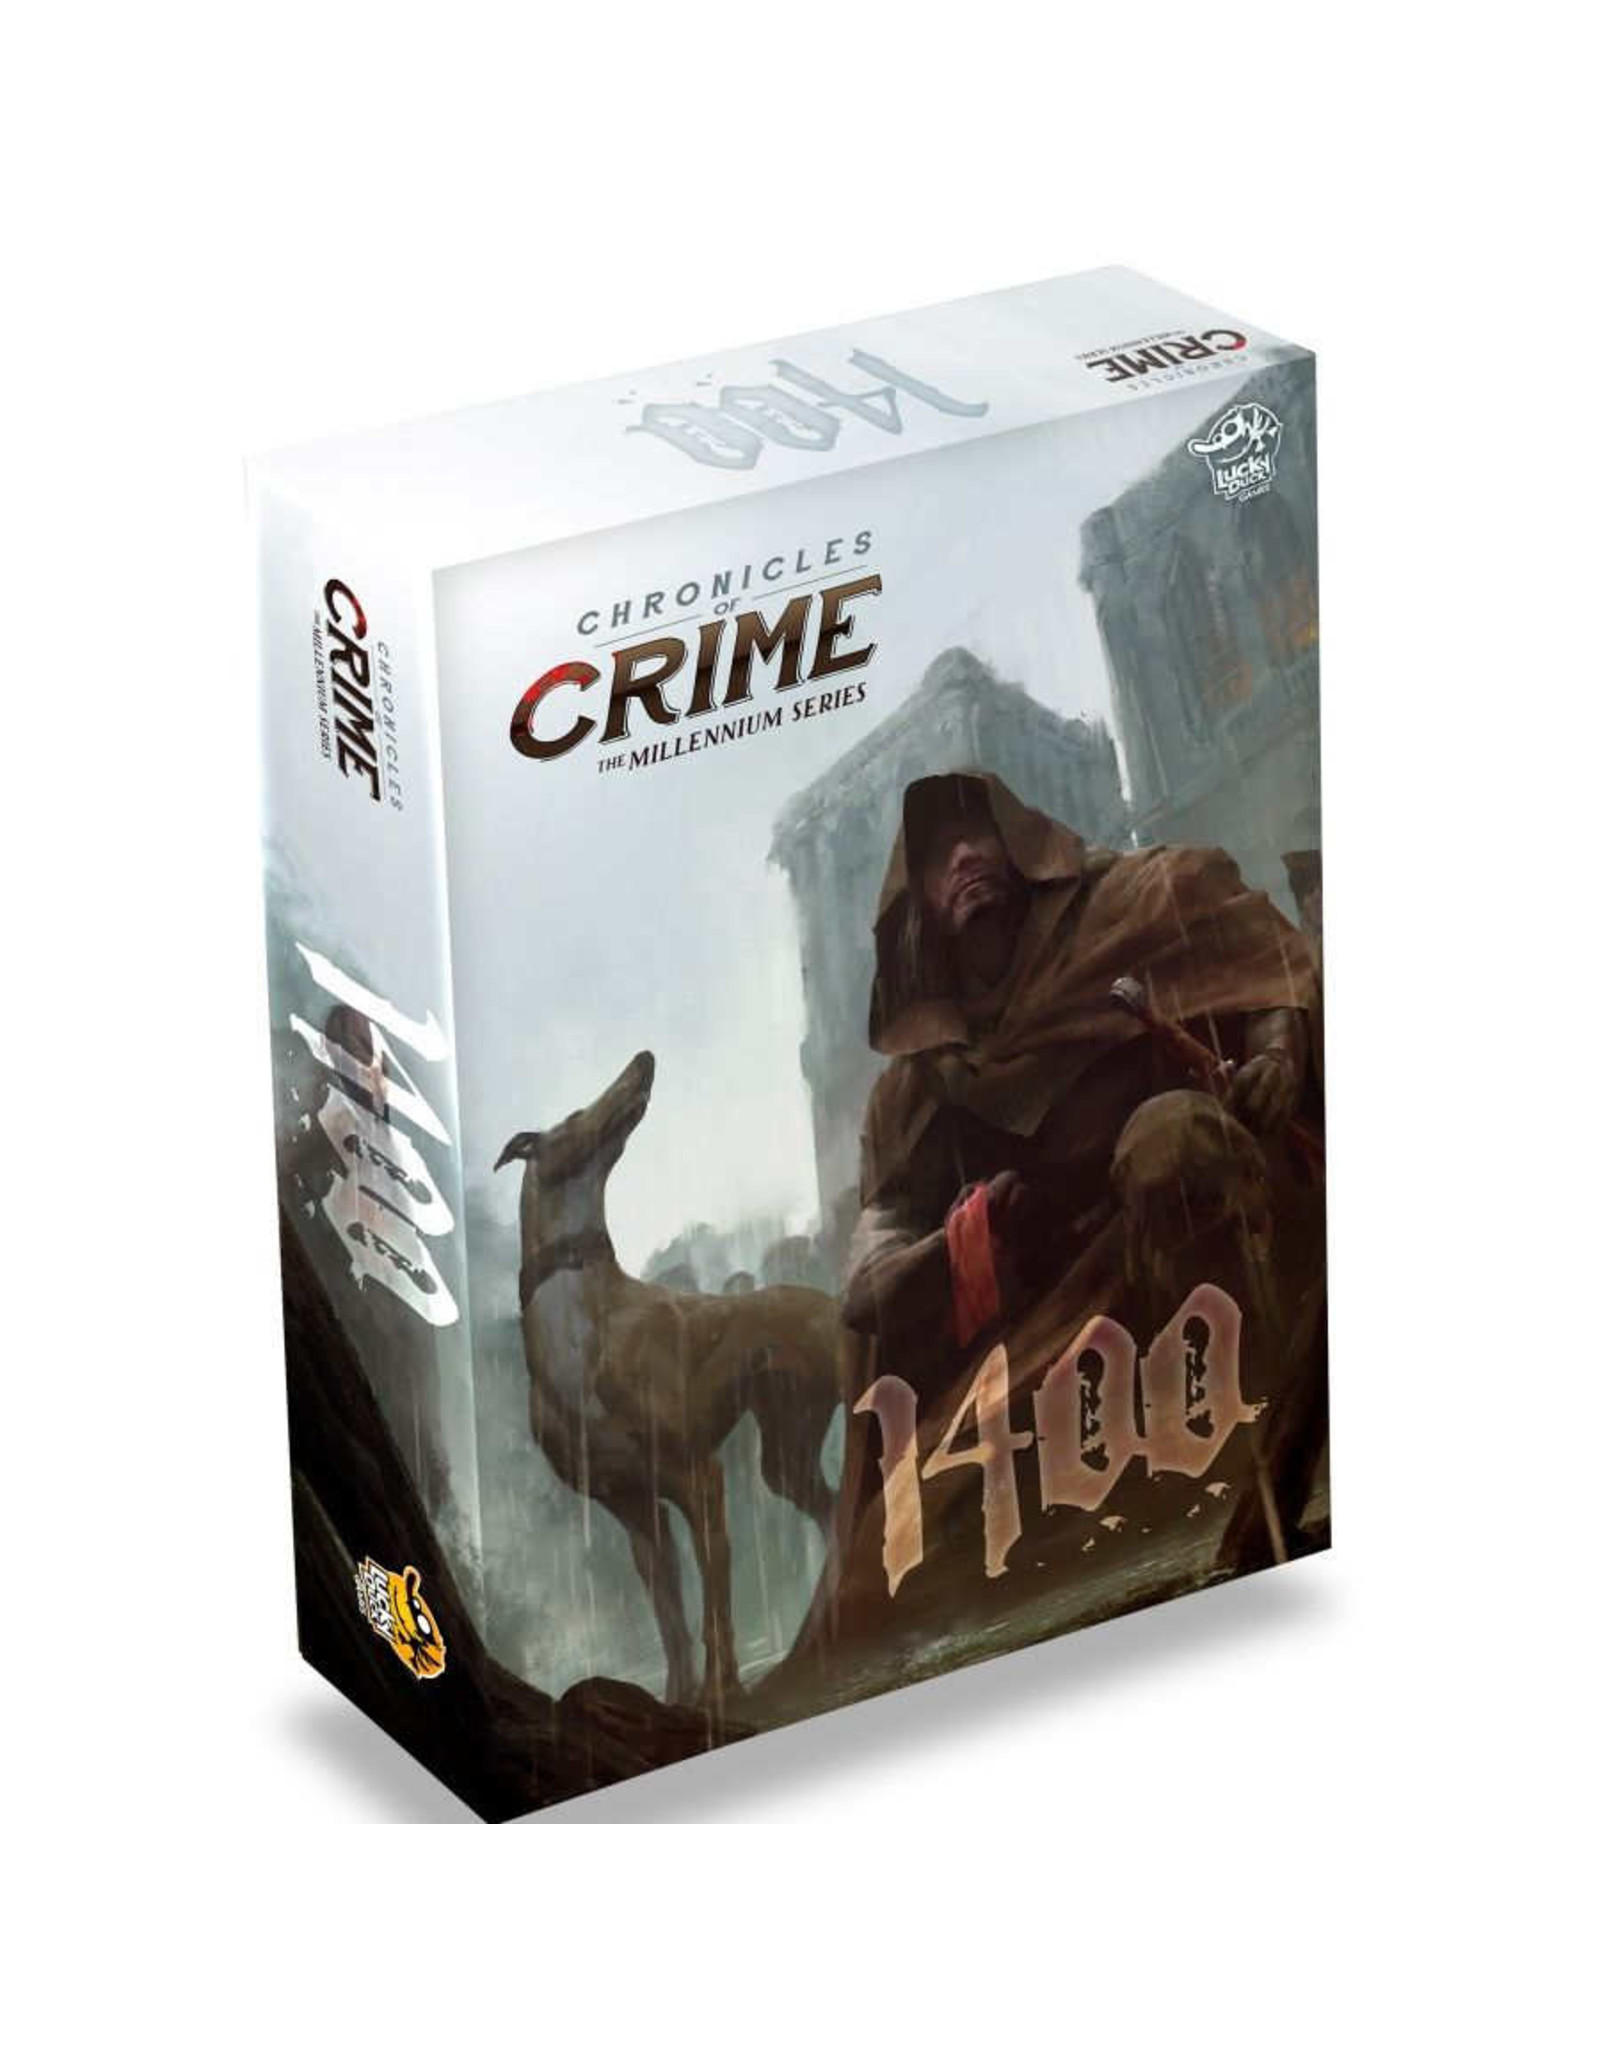 Chronicles of Crime 1400 Expansion